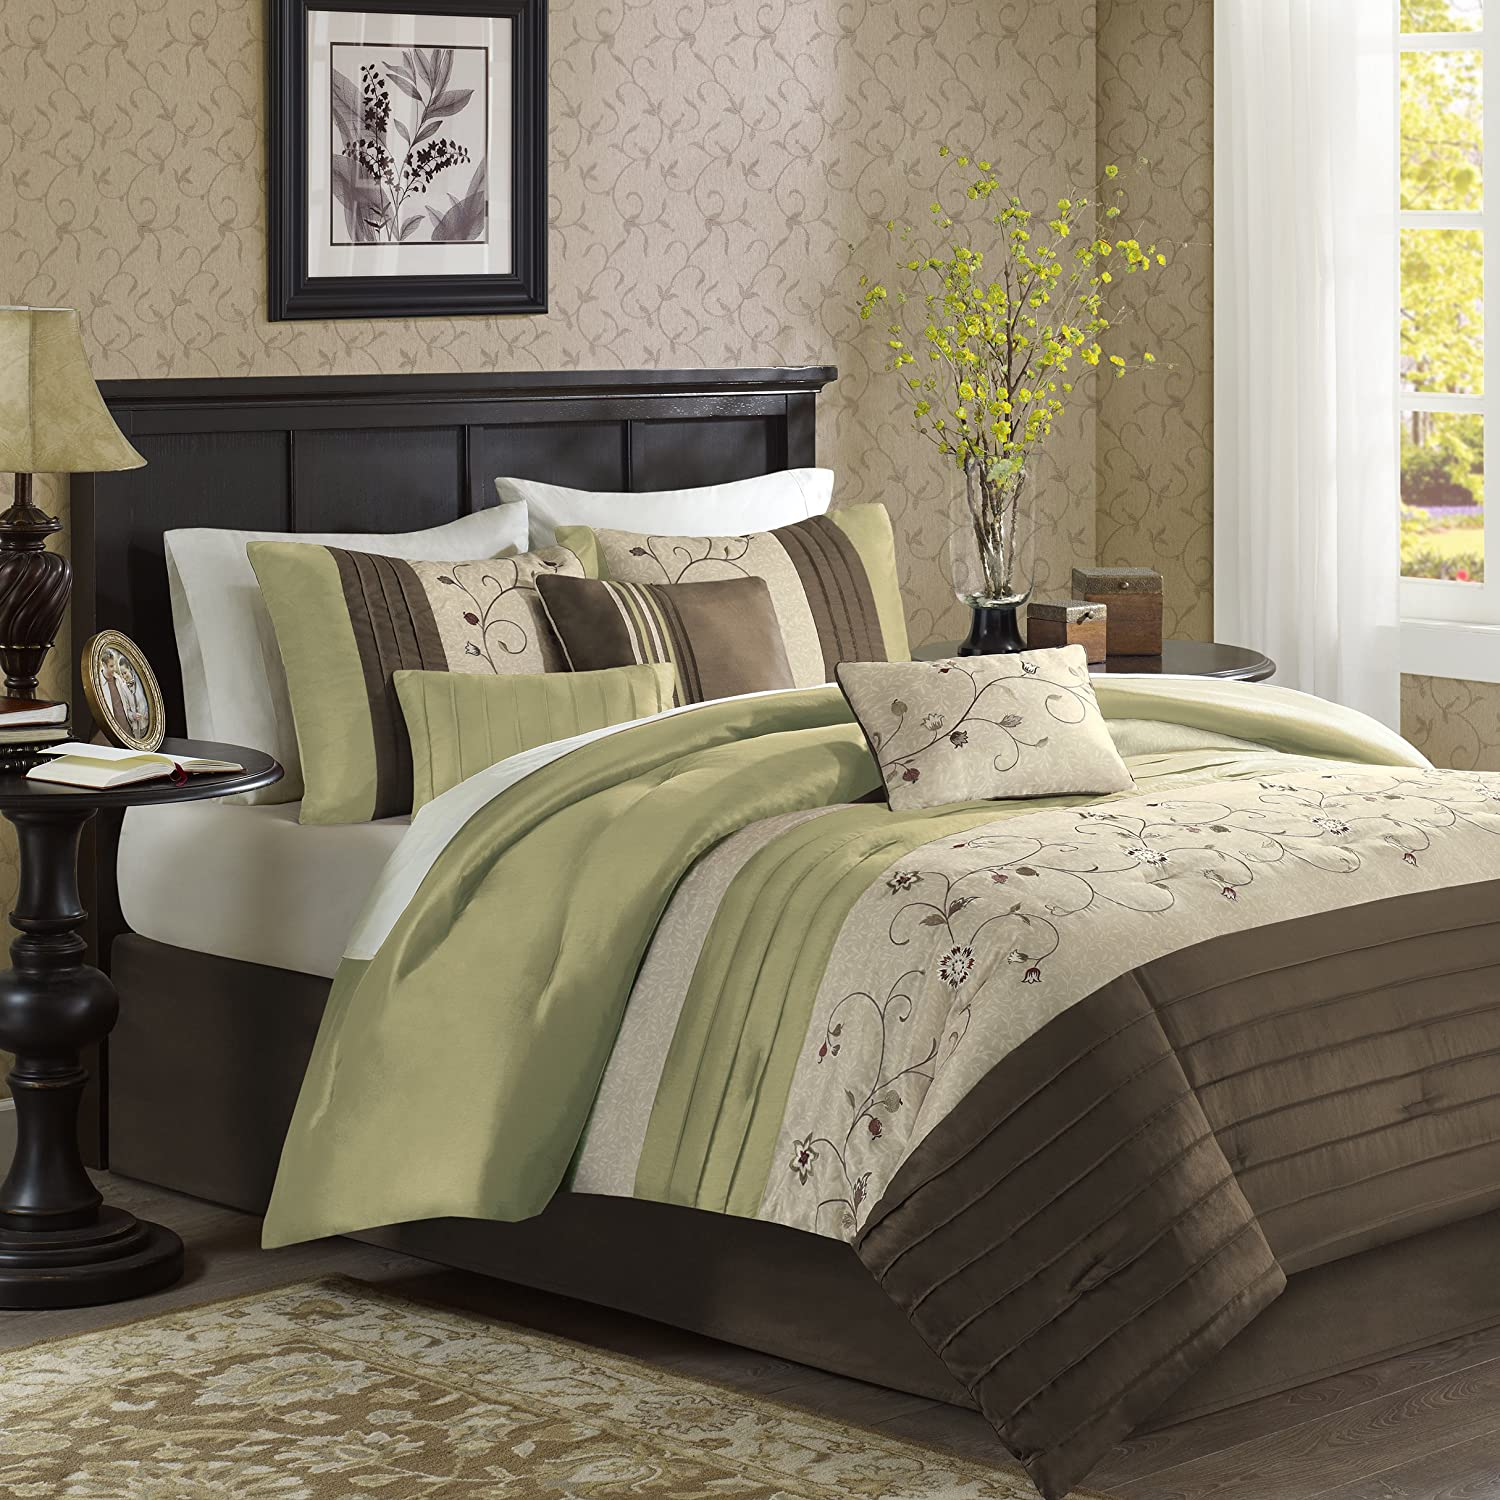 amazoncom madison park serene  piece comforter set queen  - amazoncom madison park serene  piece comforter set queen green home kitchen